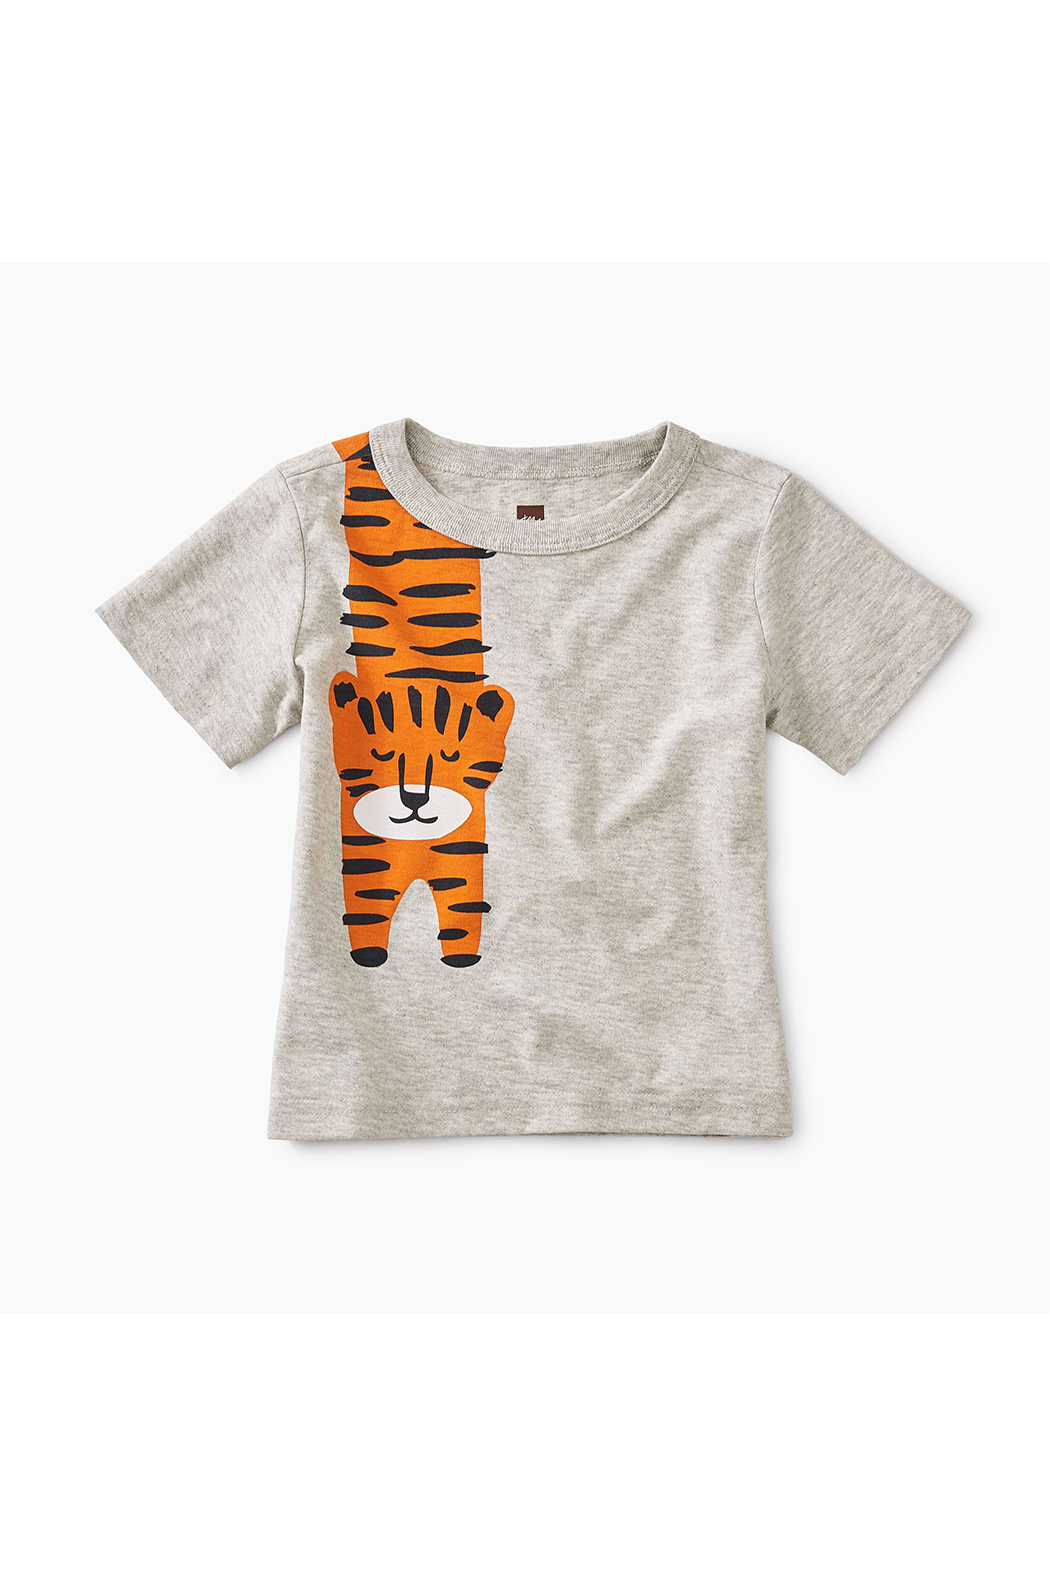 Tea Collection Tiger Turn Baby Graphic Tee - Front Cropped Image